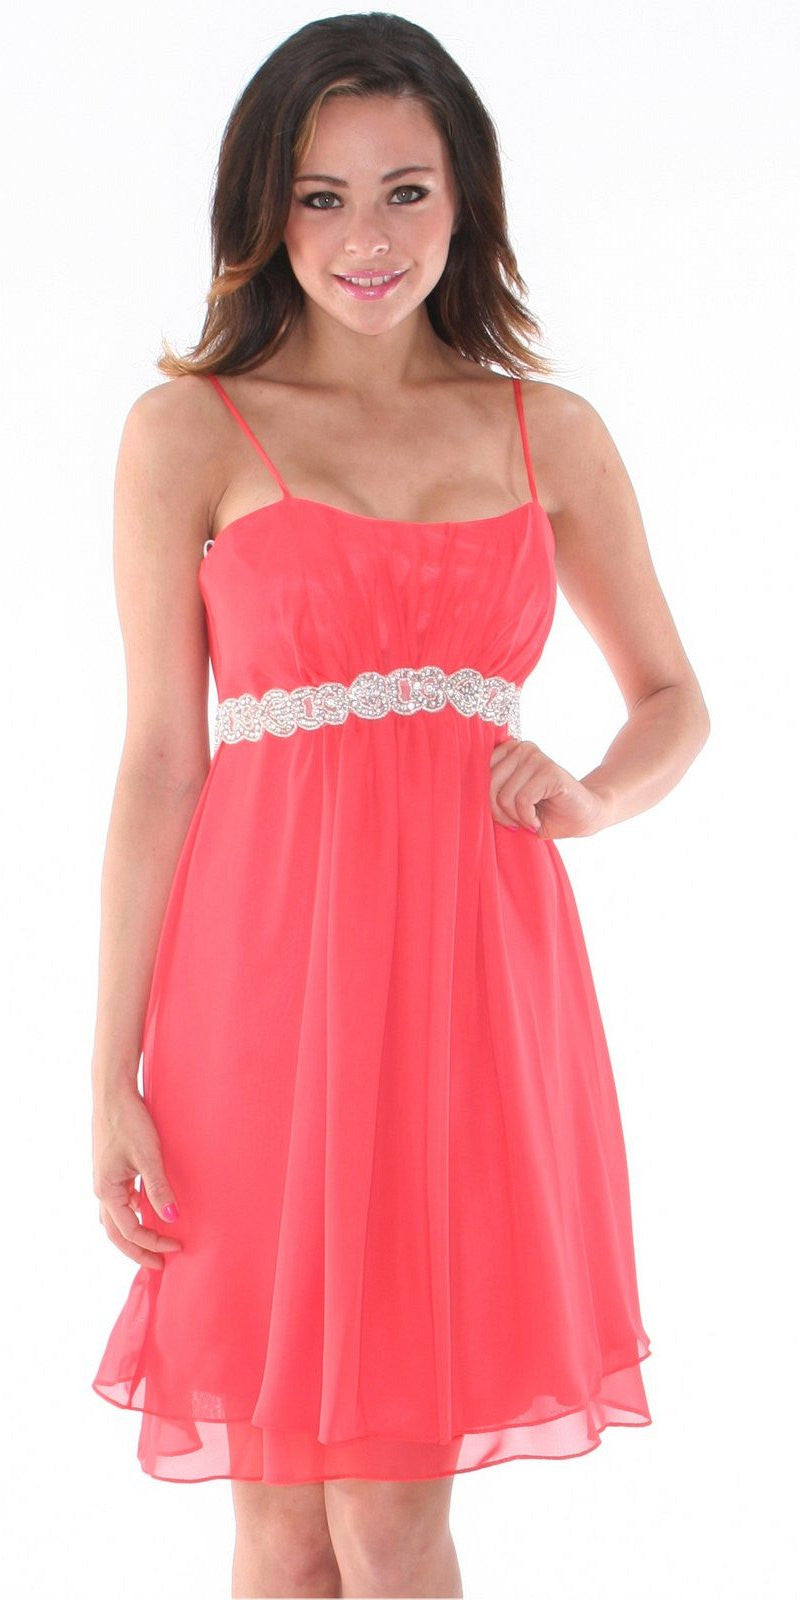 Short Knee Length Coral Chiffon Dress Empire Waist Spaghetti Straps